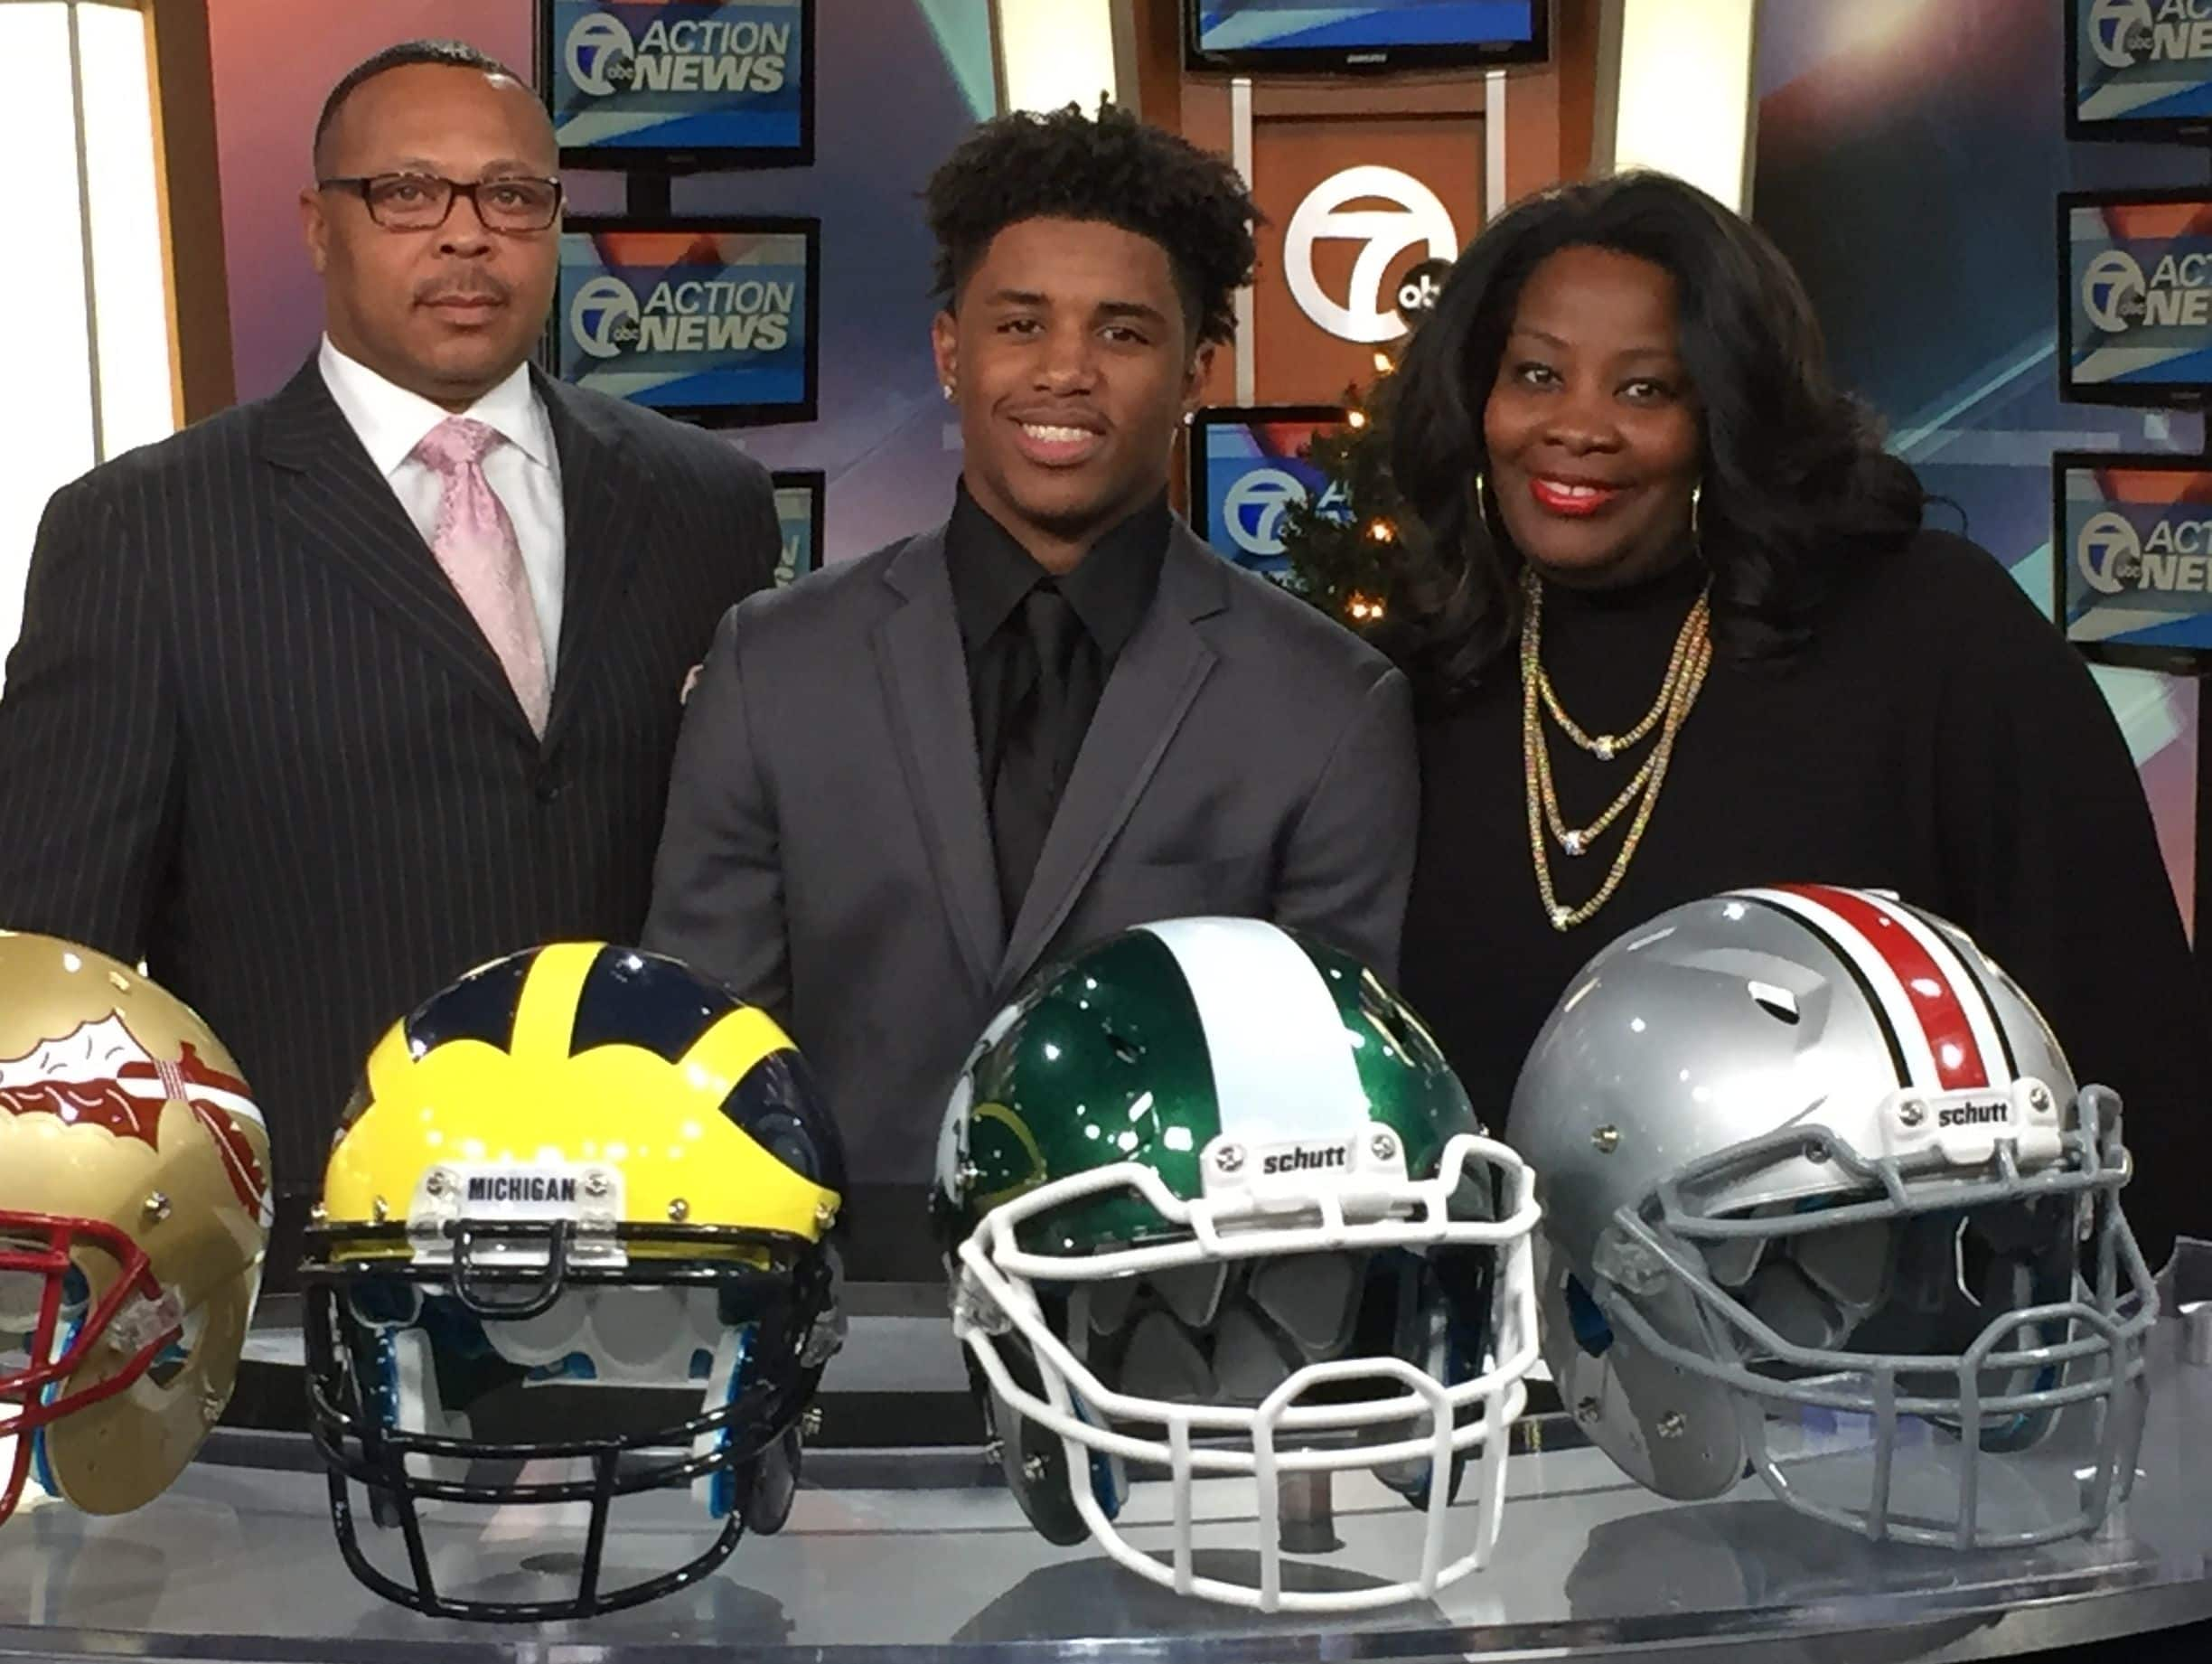 Detroit Cass Tech senior Donovan Peoples-Jones was joined by coach Thomas Wilcher and principal Lisa Phillips for the announcement.